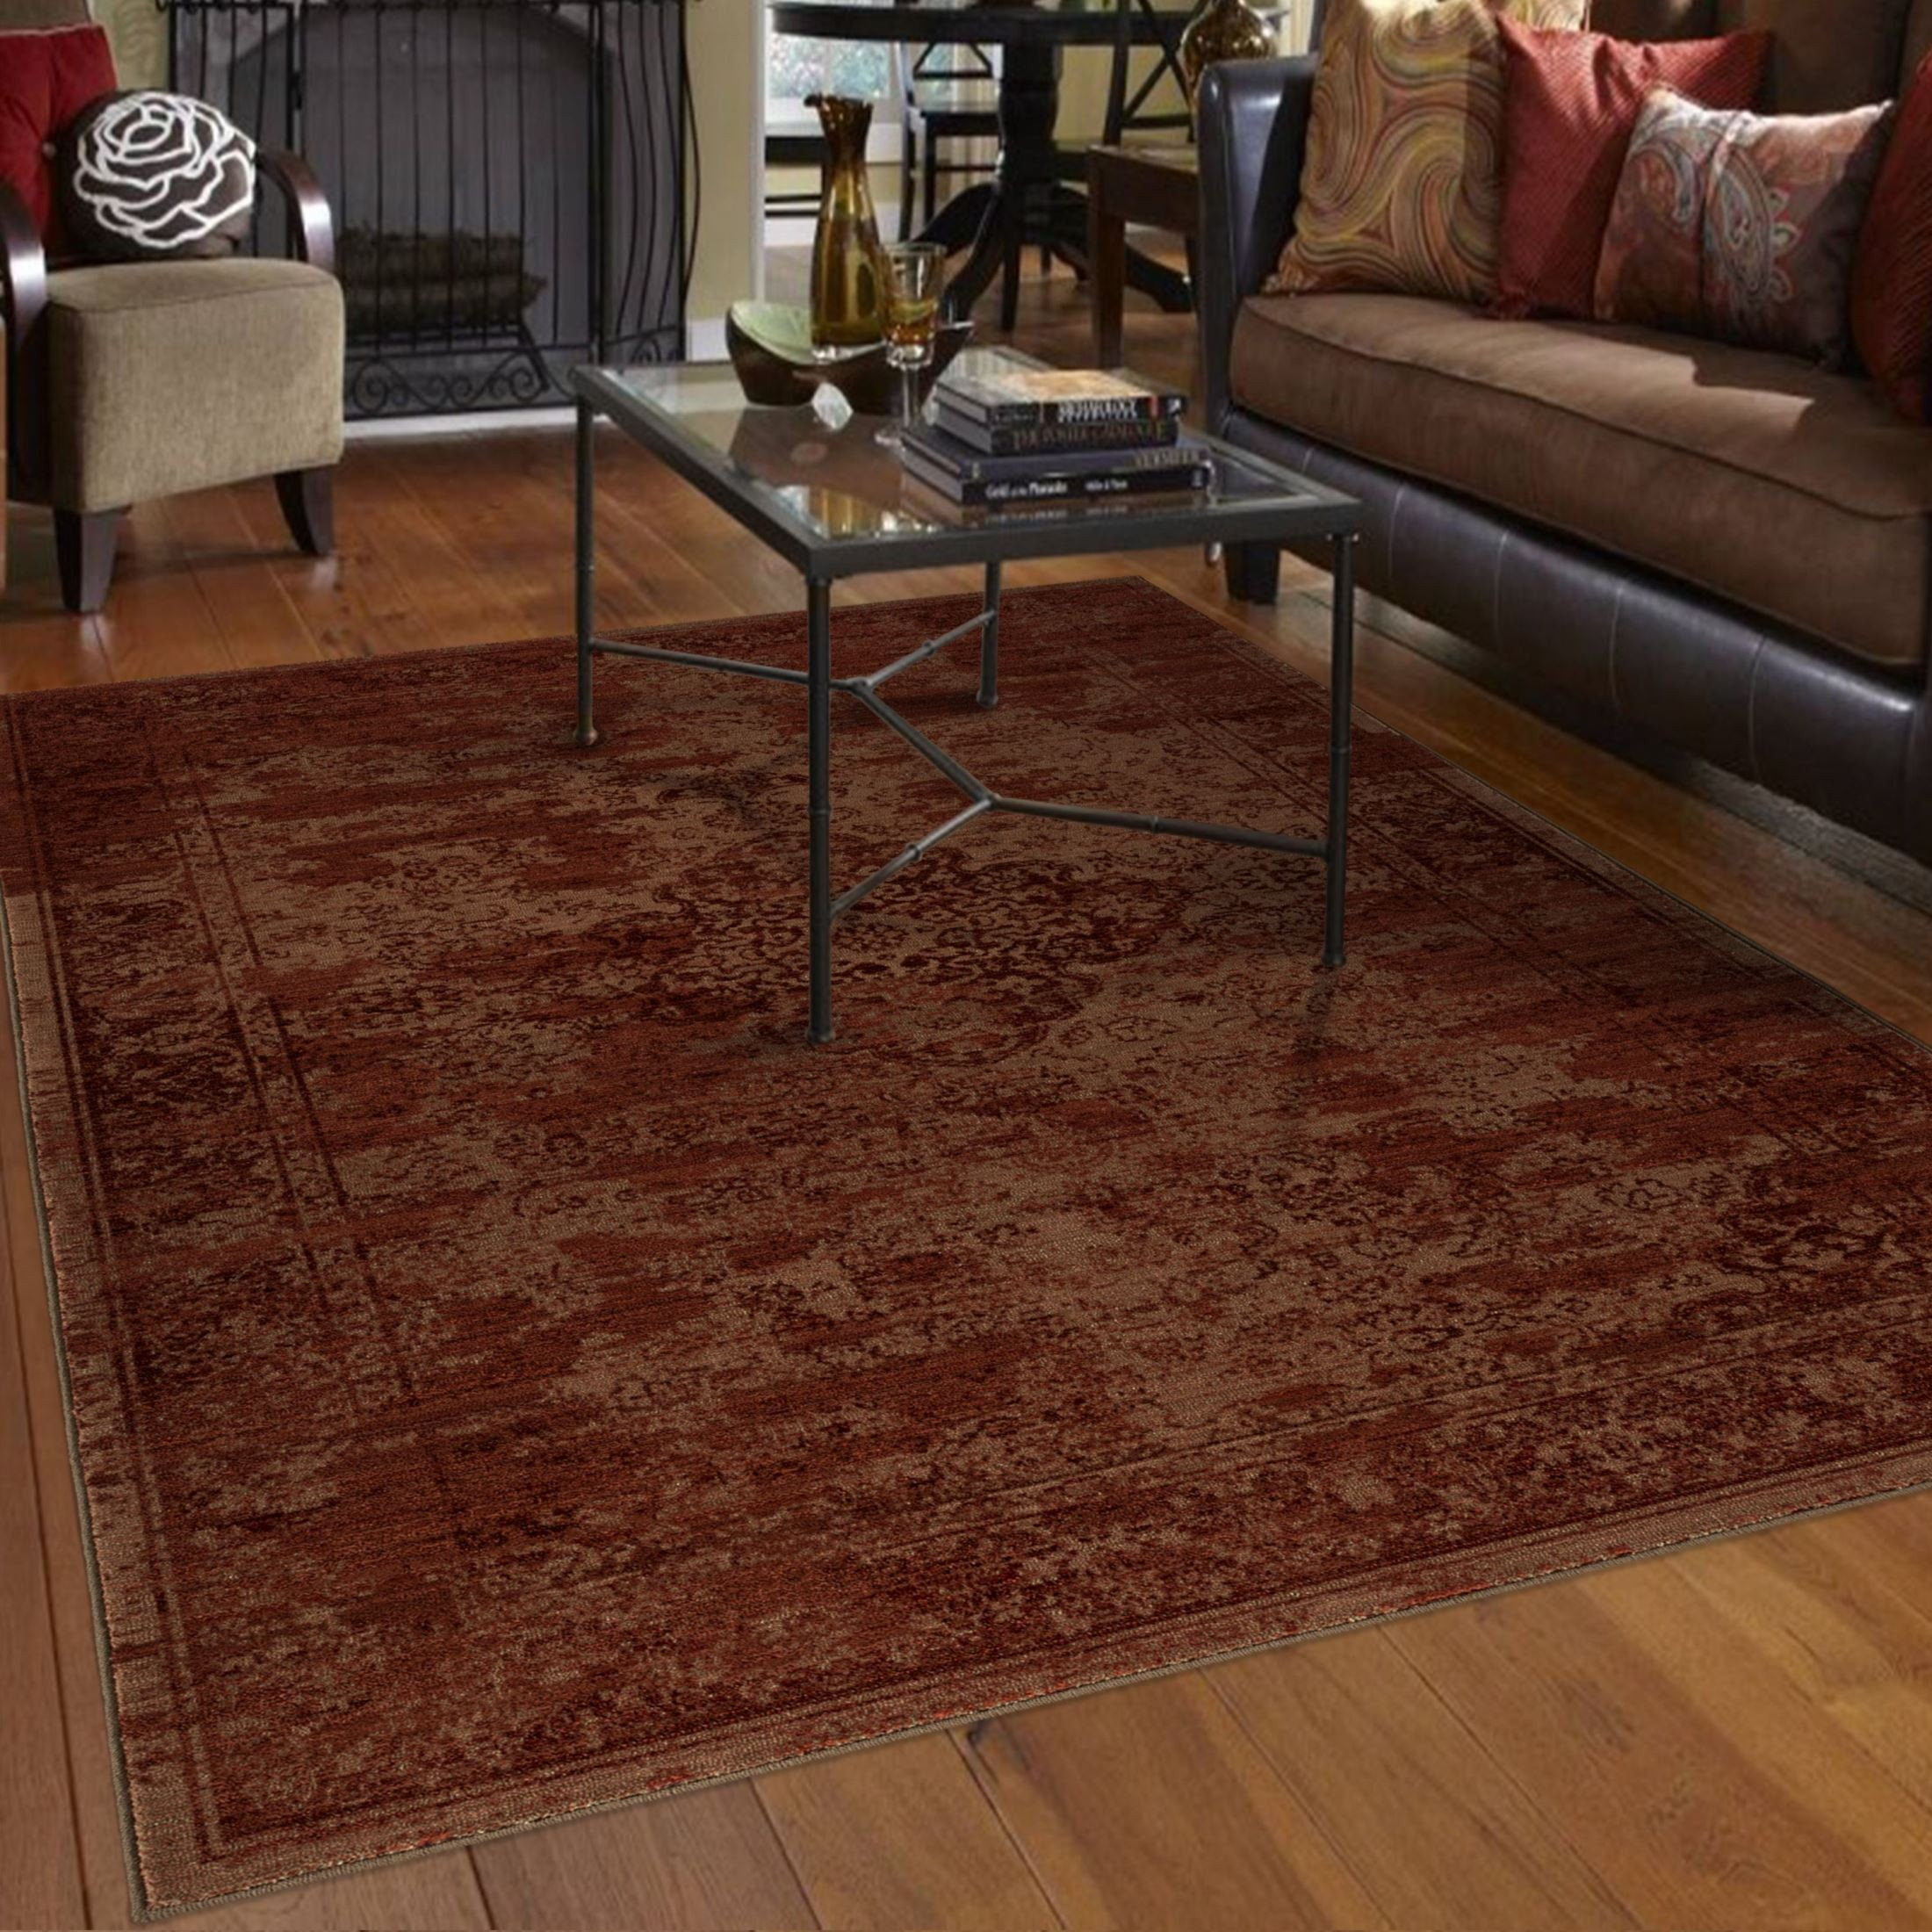 Faded Morocco Red Medium Rug From Orian 3511 5x8